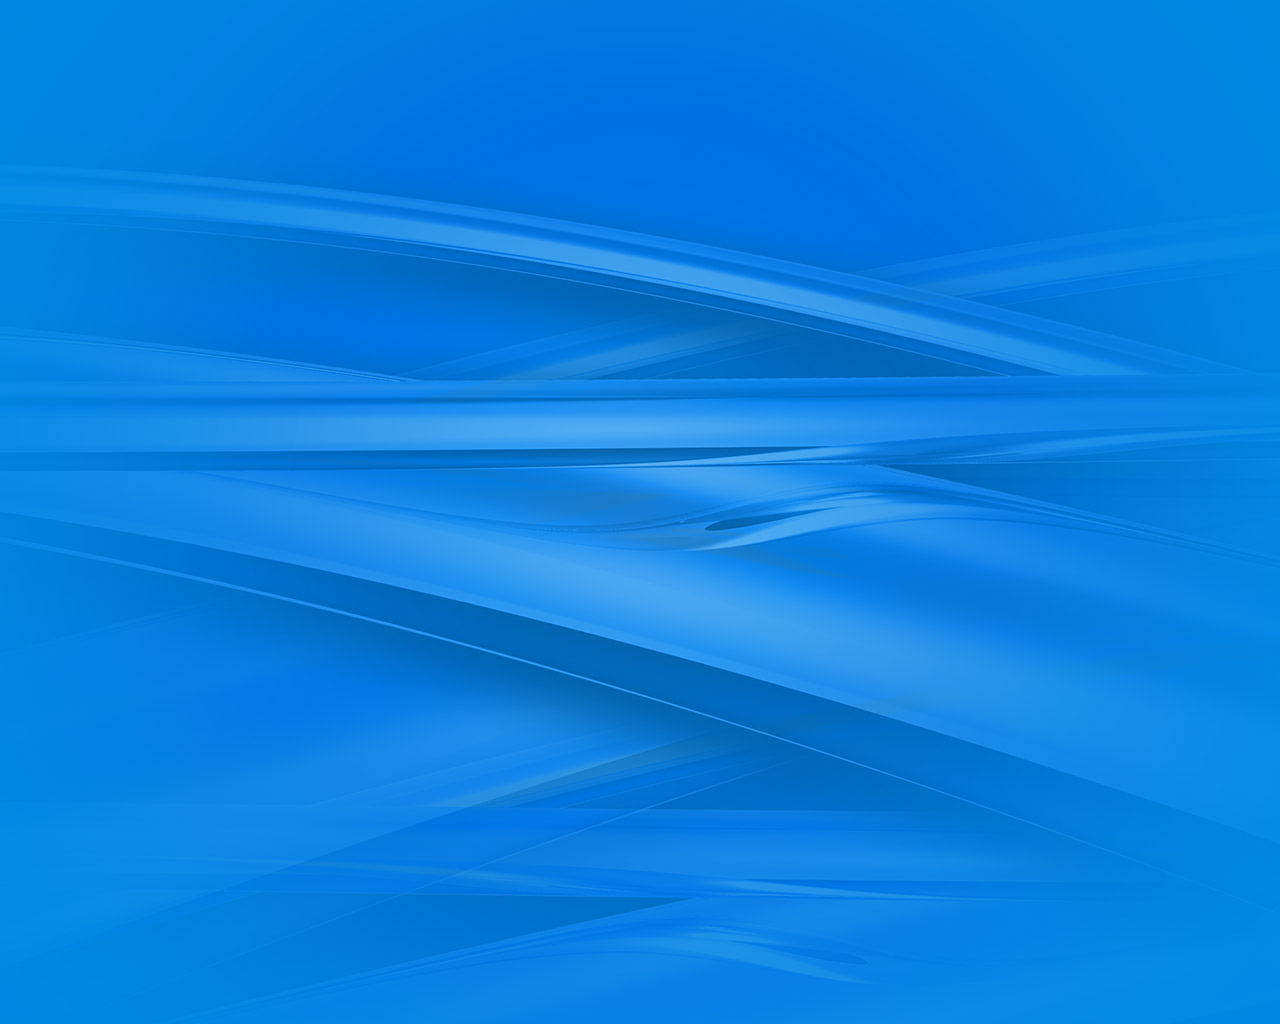 Soft blue metallic background image TrashedGraphics 1280x1024